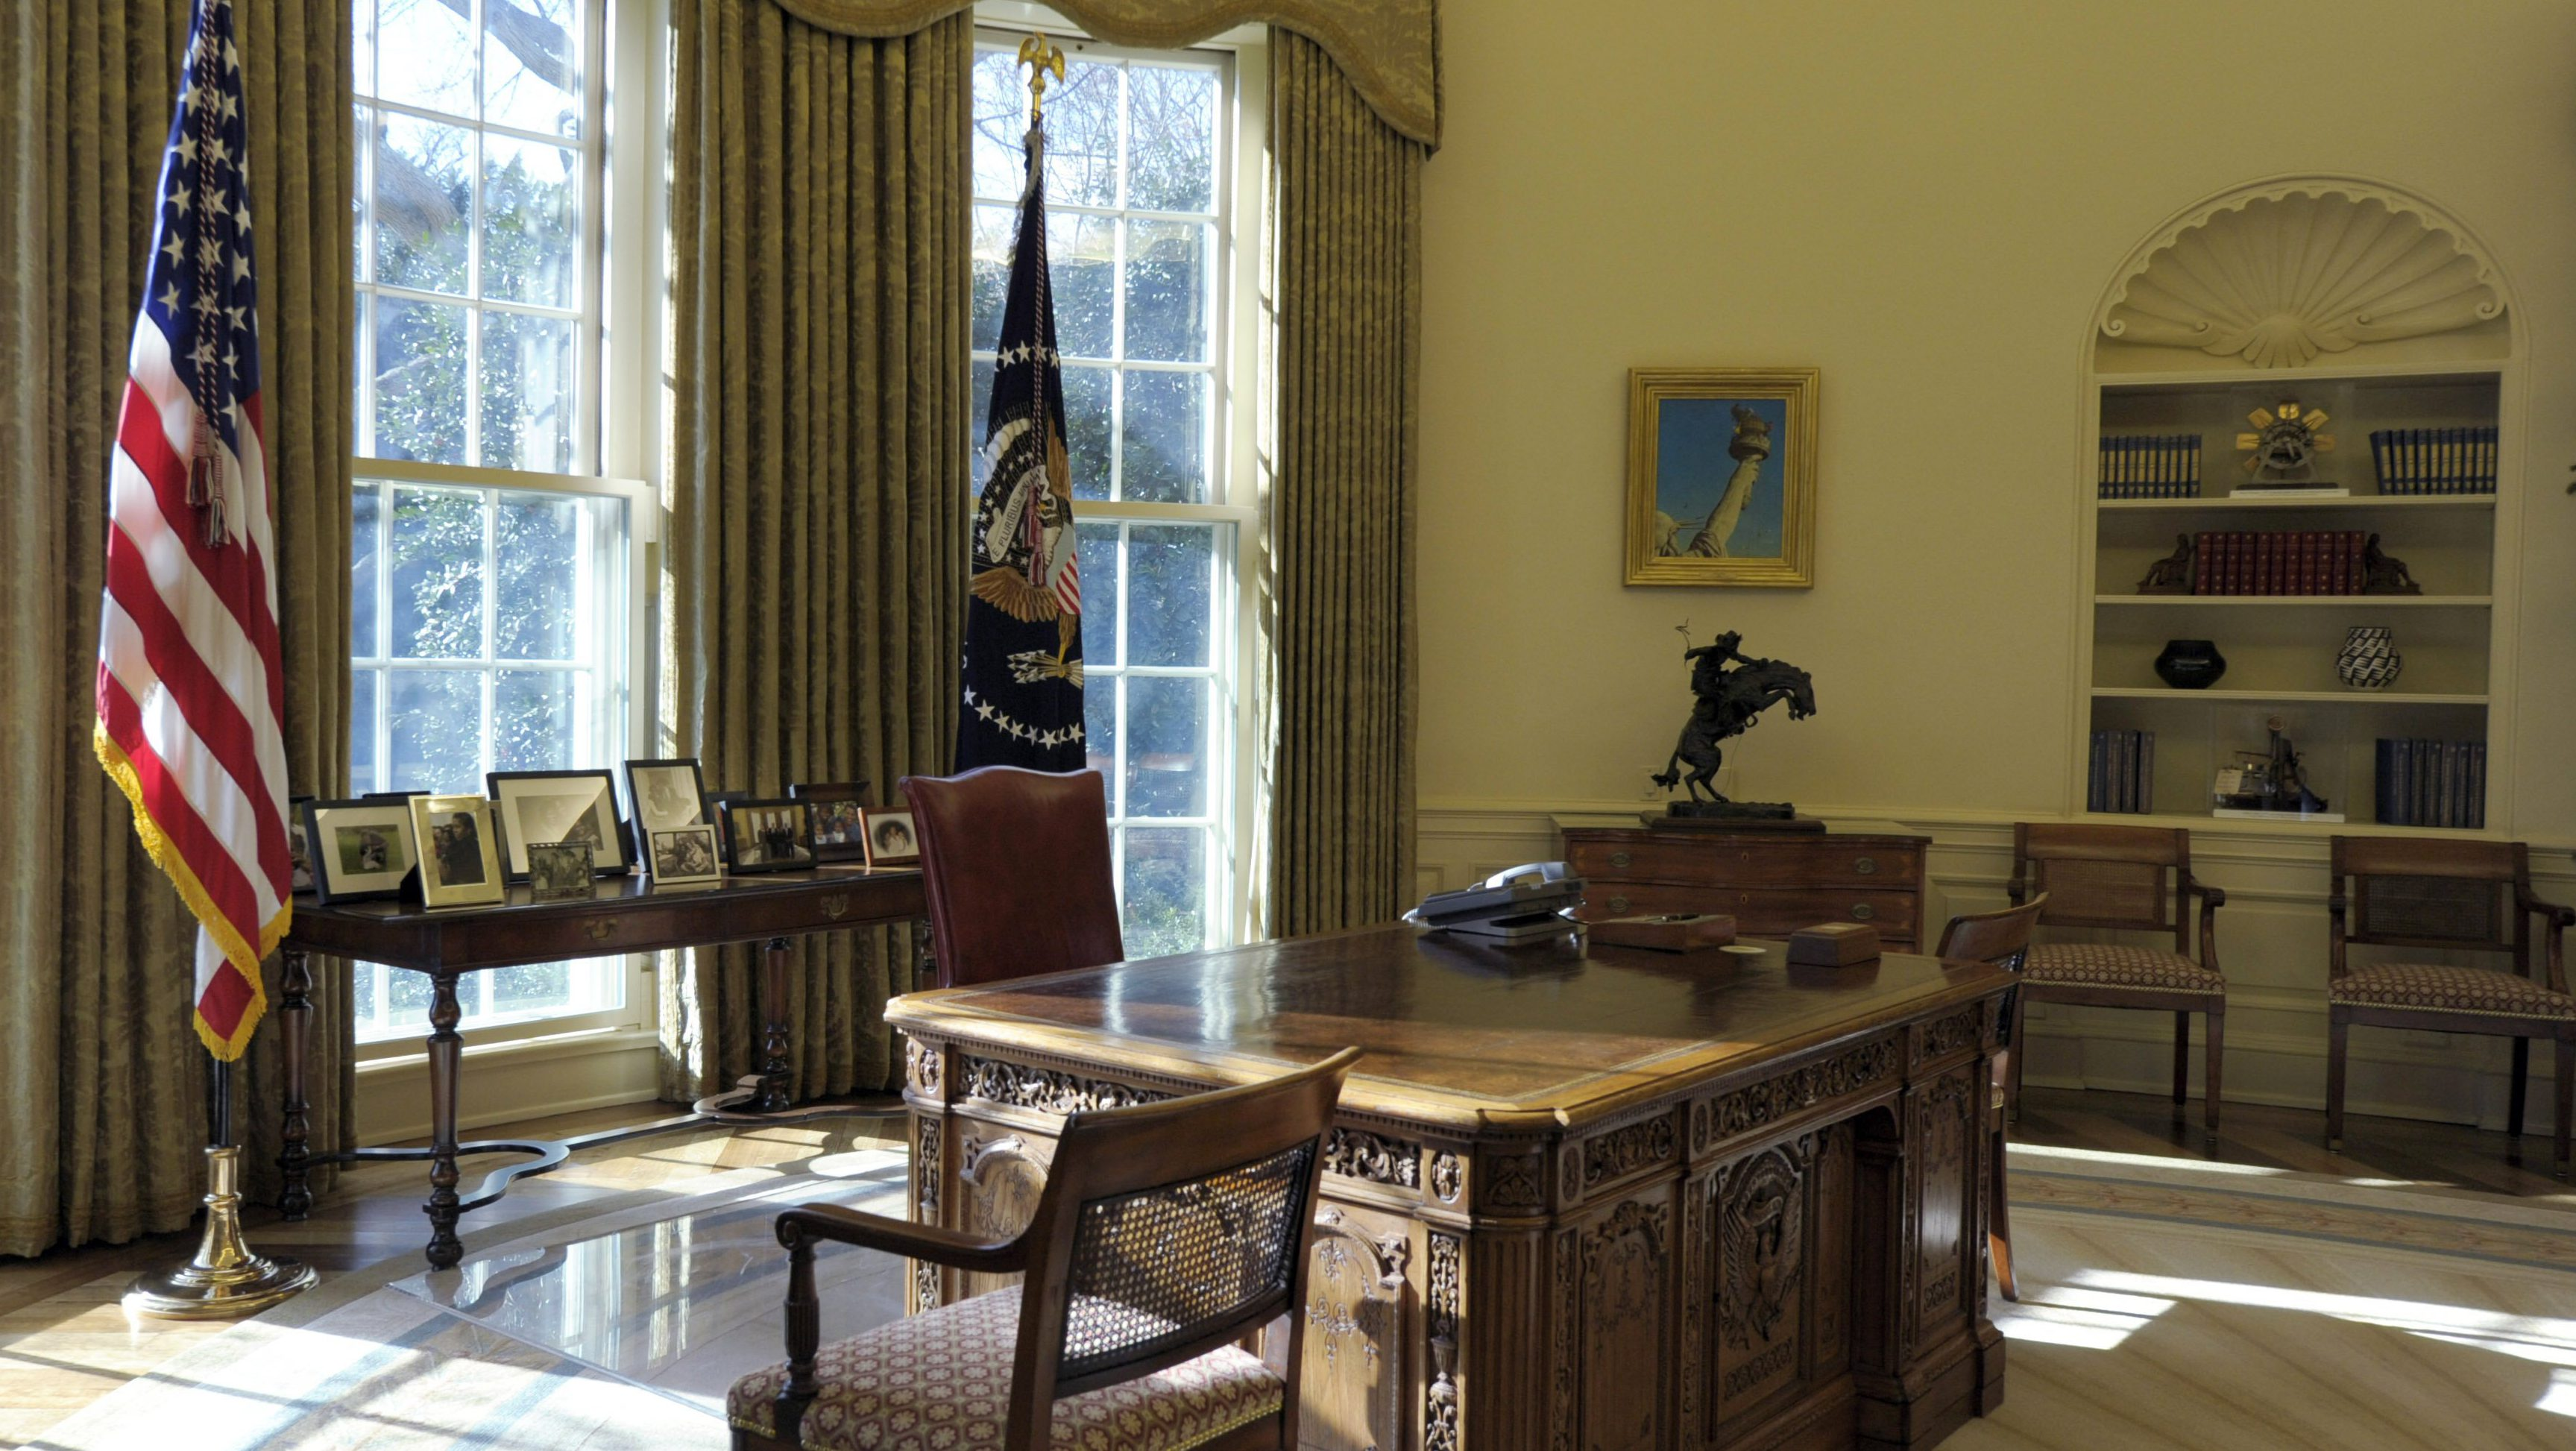 President Barack Obama's Oval Office at the White House in Washington, Tuesday, Dec.  29, 2009.